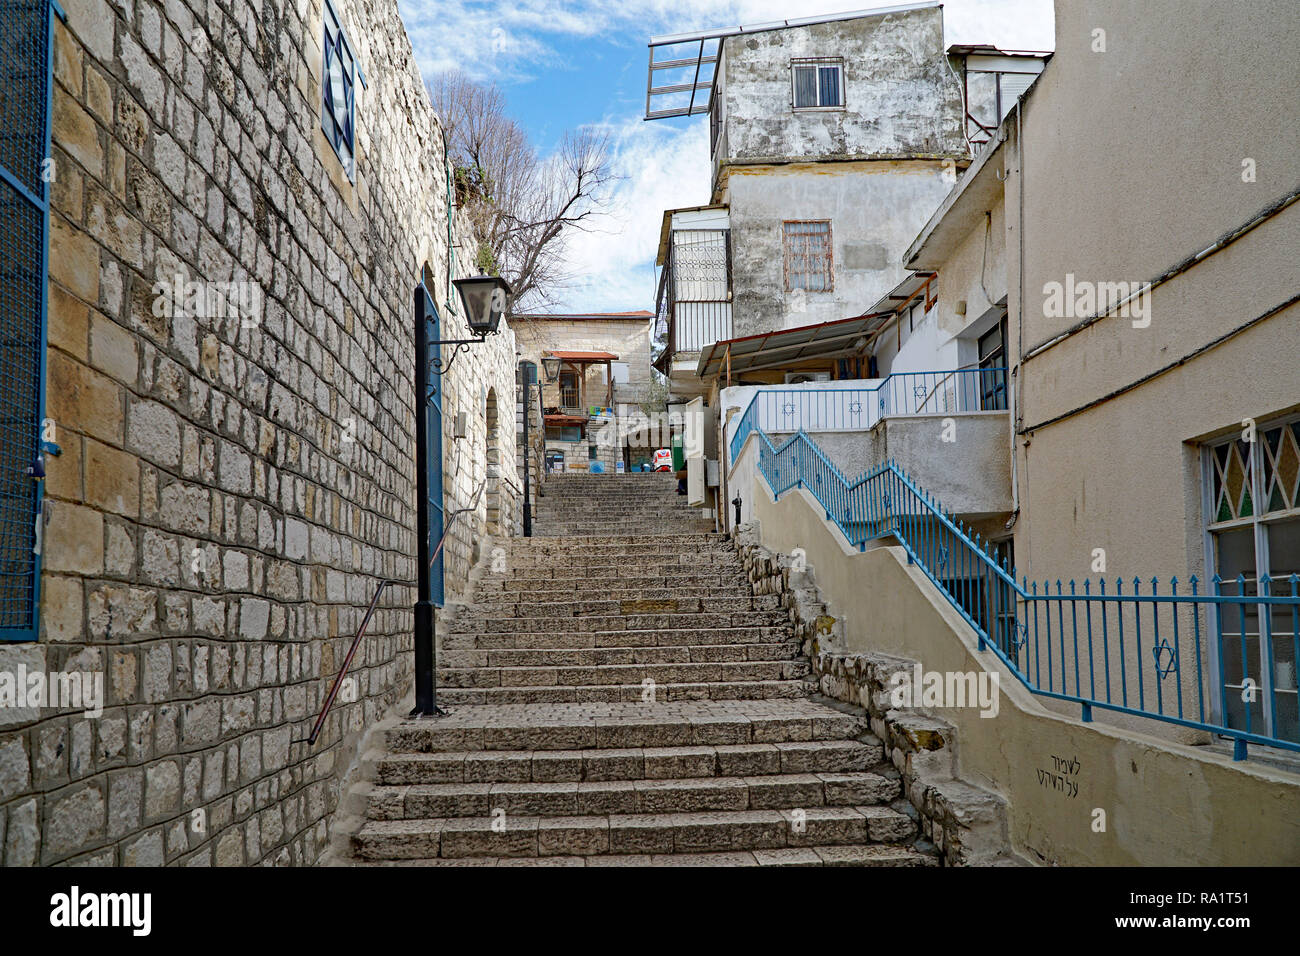 SAFED, ISRAEL - JANUARY 2017:   This ancient city with narrow lanes houses a number of historic synagoges  associated with Jewish mysticism, as well a - Stock Image